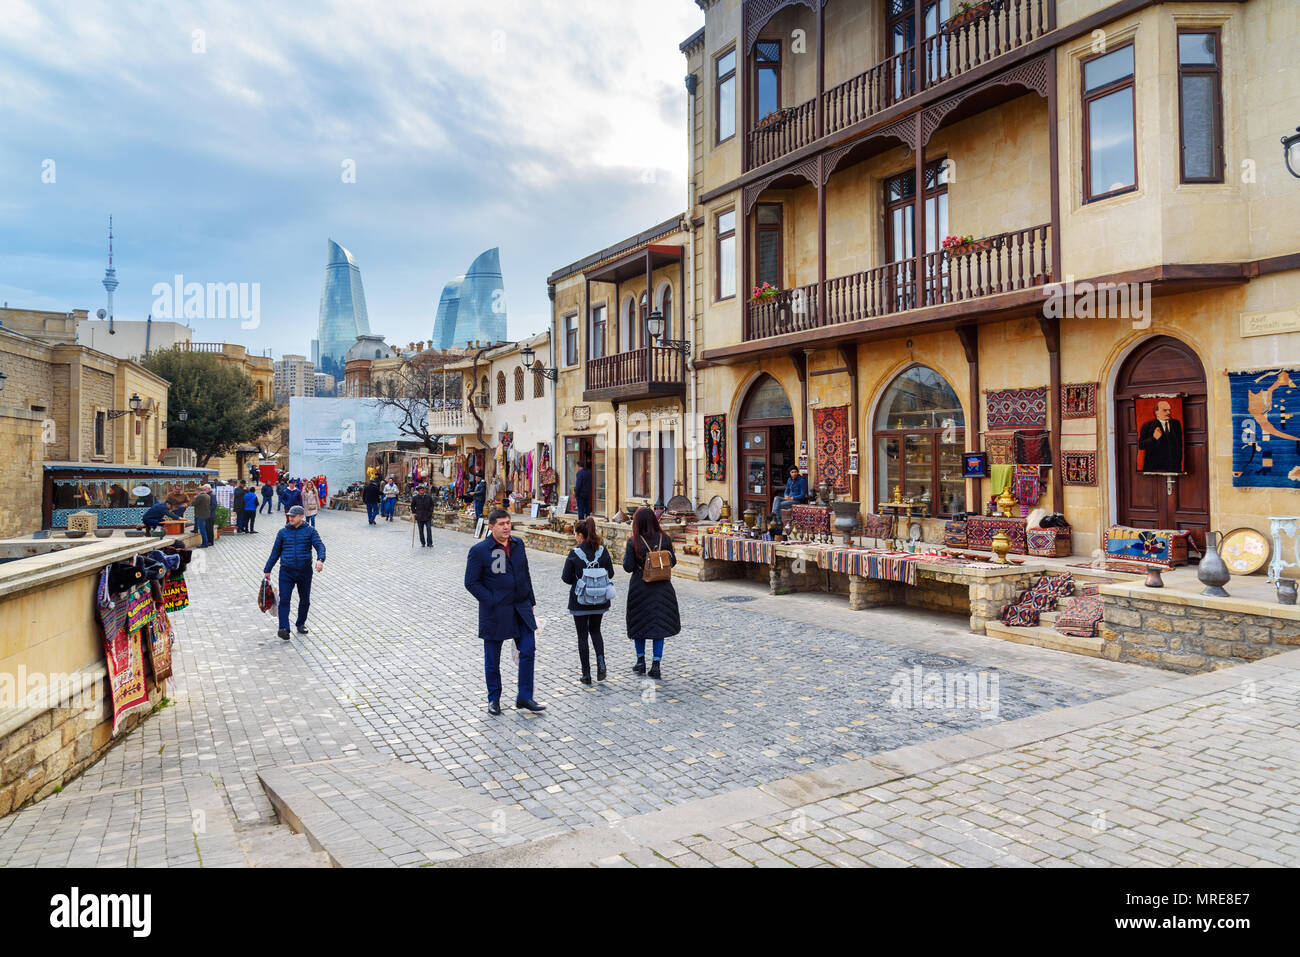 Baku, Azerbaijan - March 10, 2018: Street in Old city,Icheri Sheher is the historical core of Baku. And view of Flame Towers - Stock Image